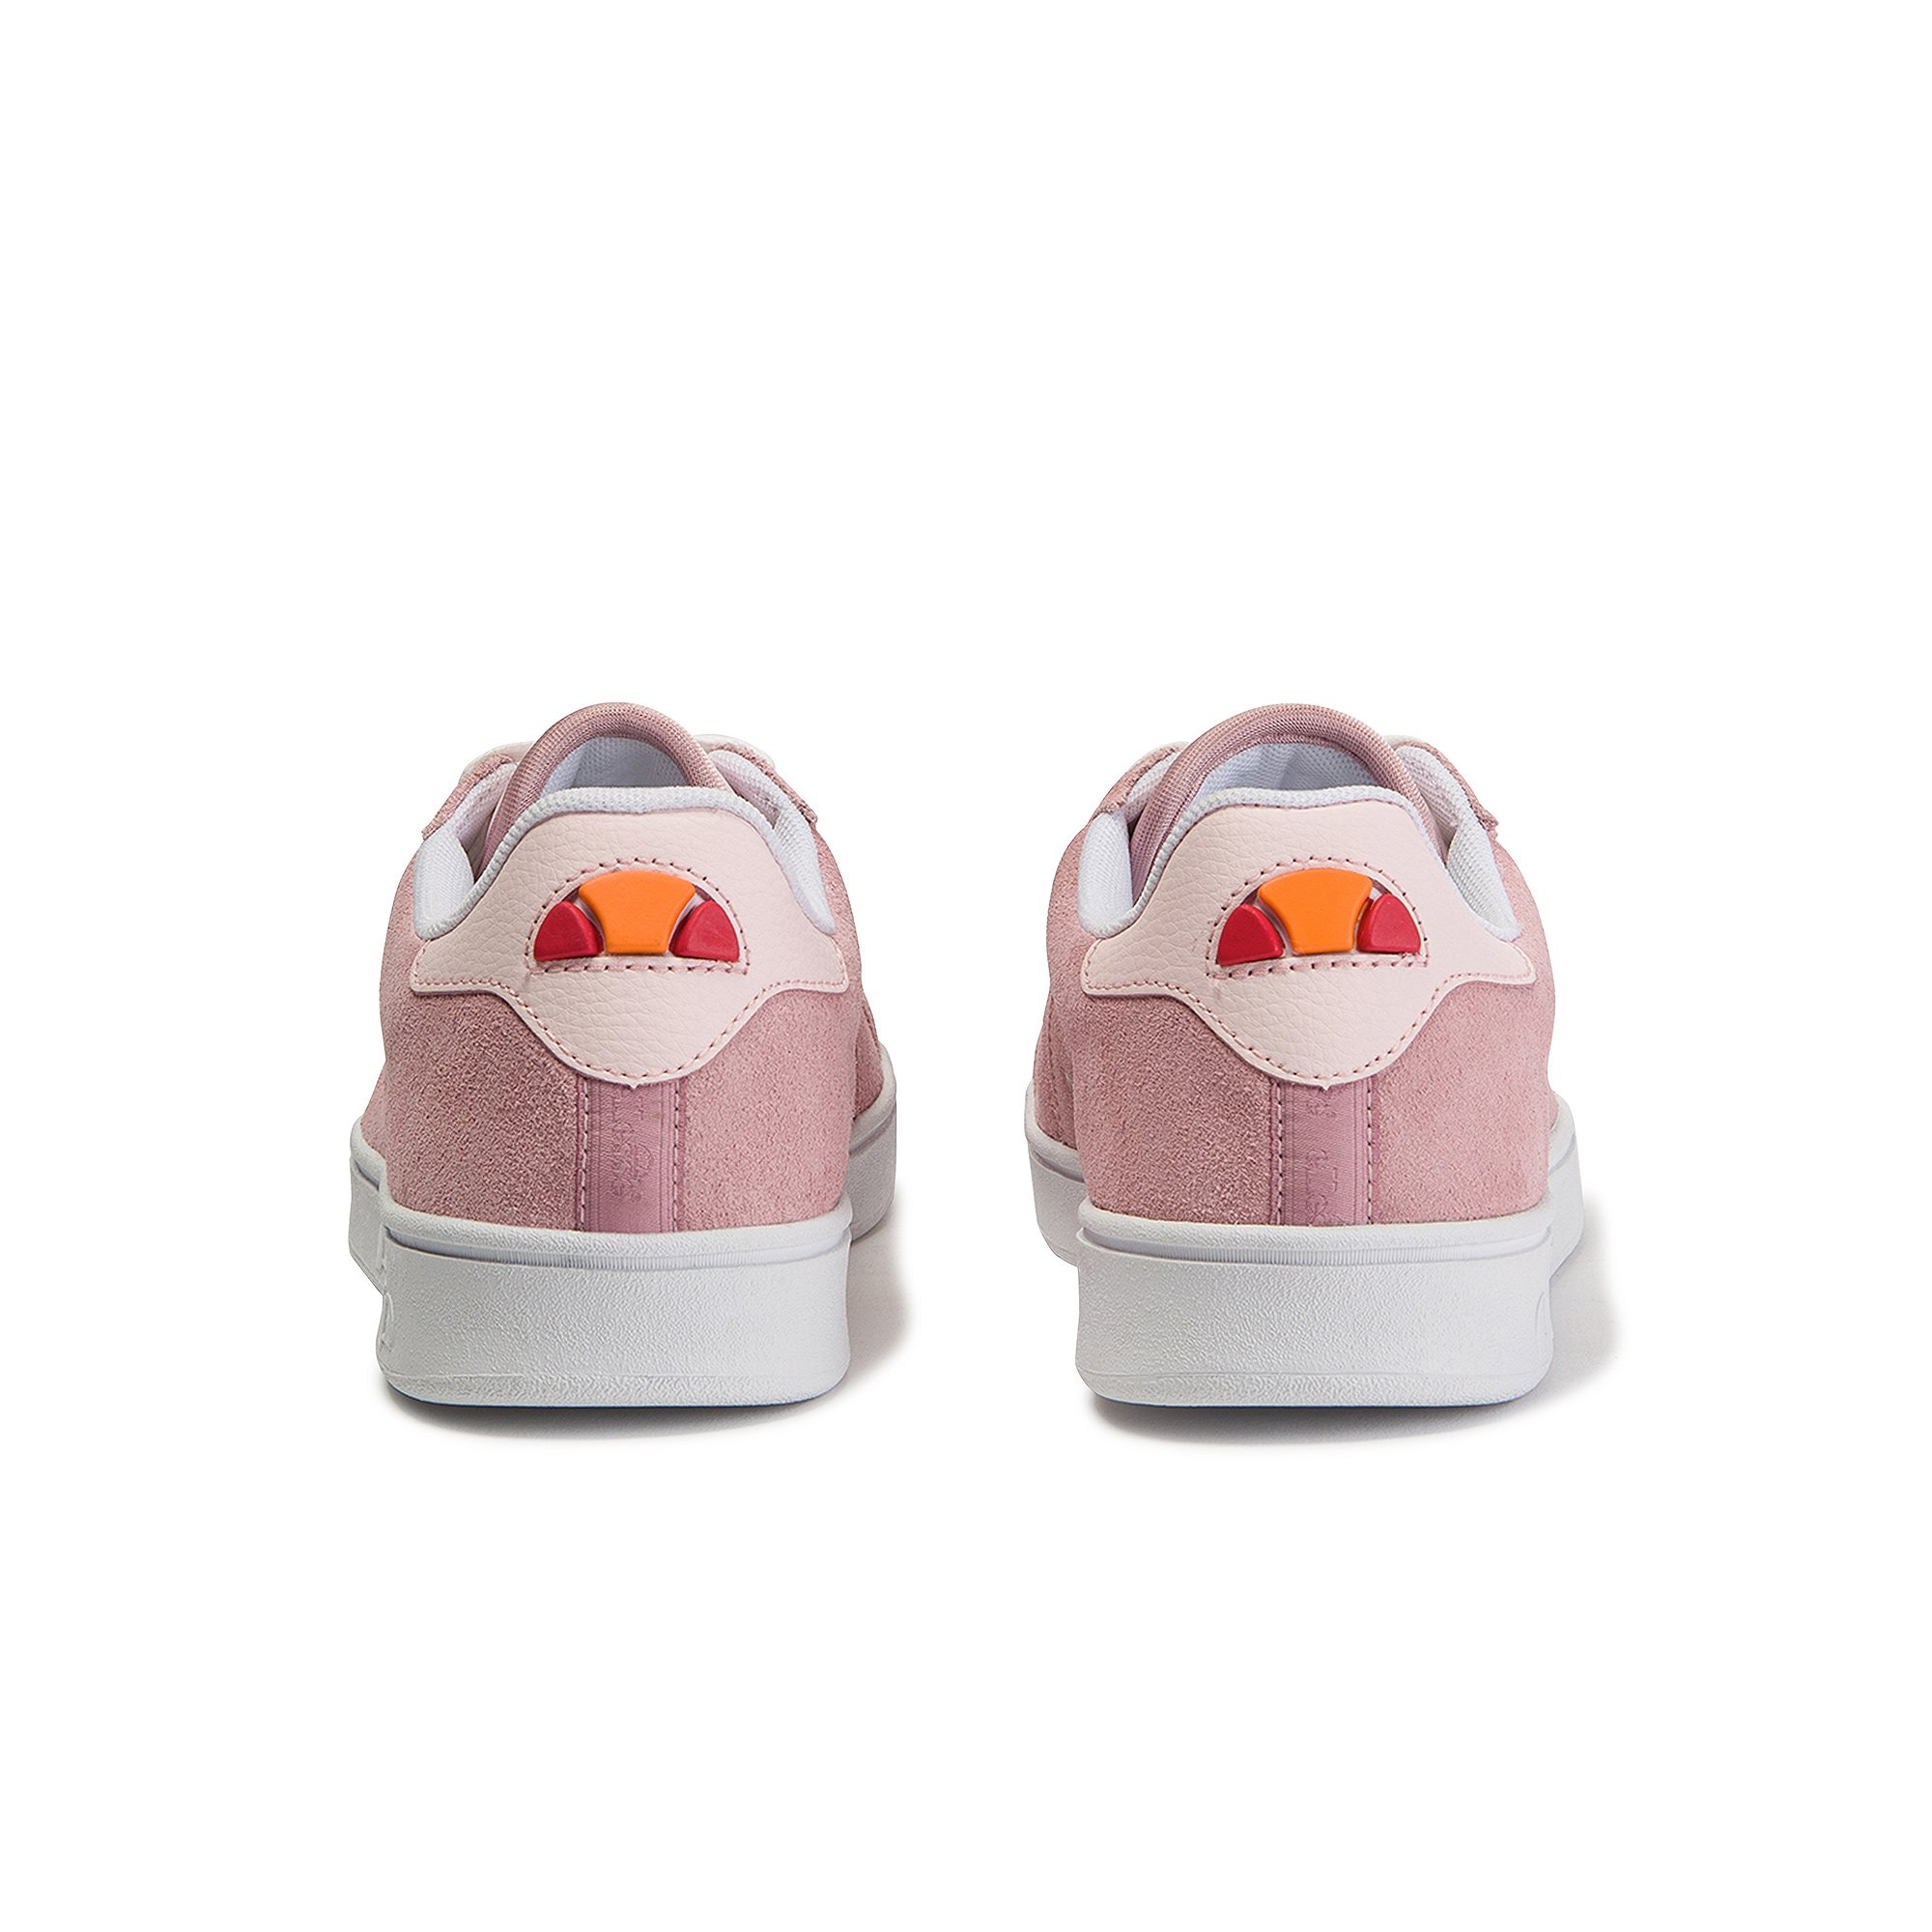 Giày thể thao nữ  ELLESSE Campo leather - 615913